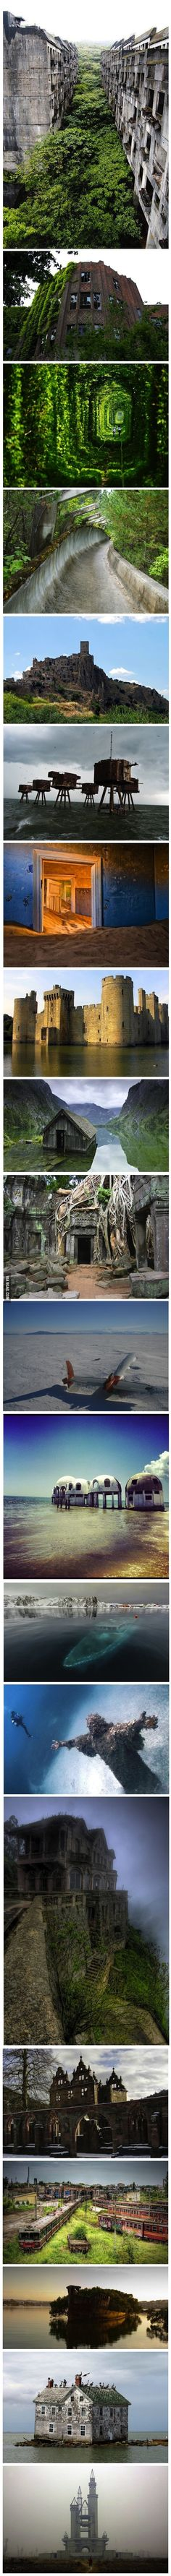 The 20 most awesome abandoned places